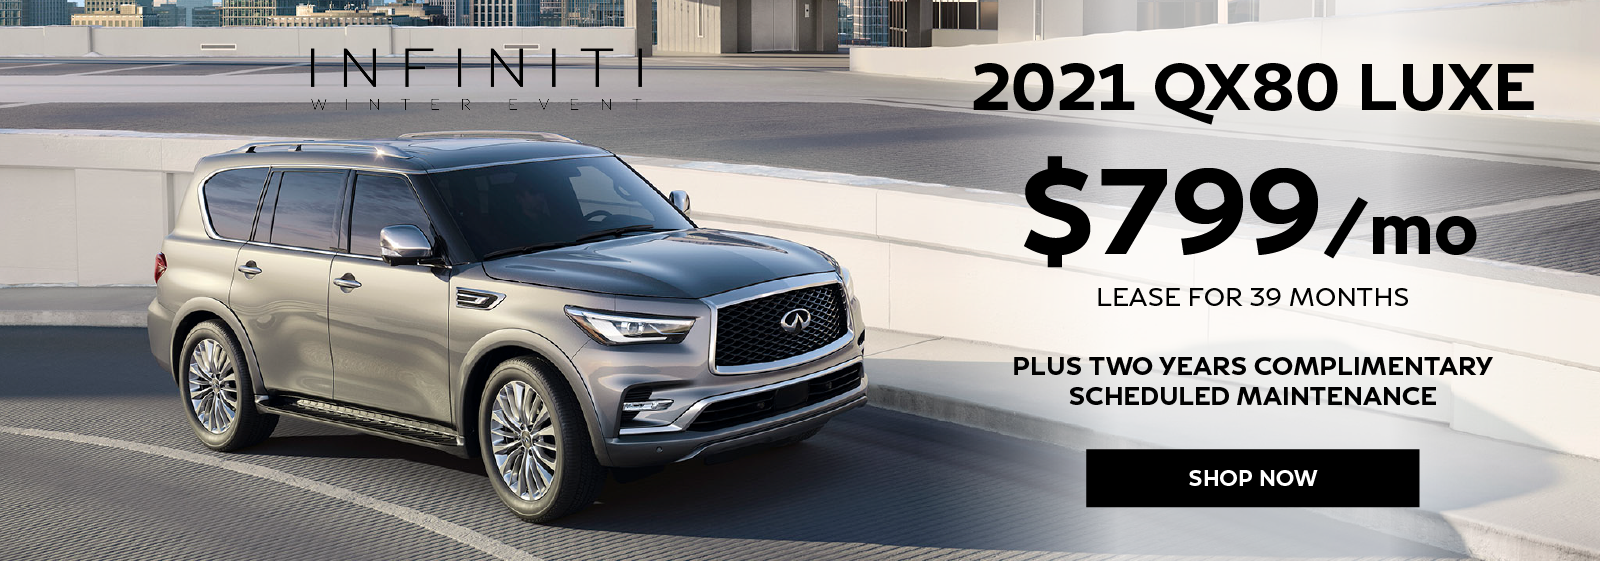 Well-qualified lessees can lease a new 2021 INFINITI QX80 LUXE for $799 per month for 39 months plus get two years complimentary scheduled maintenance. Click to view inventory.